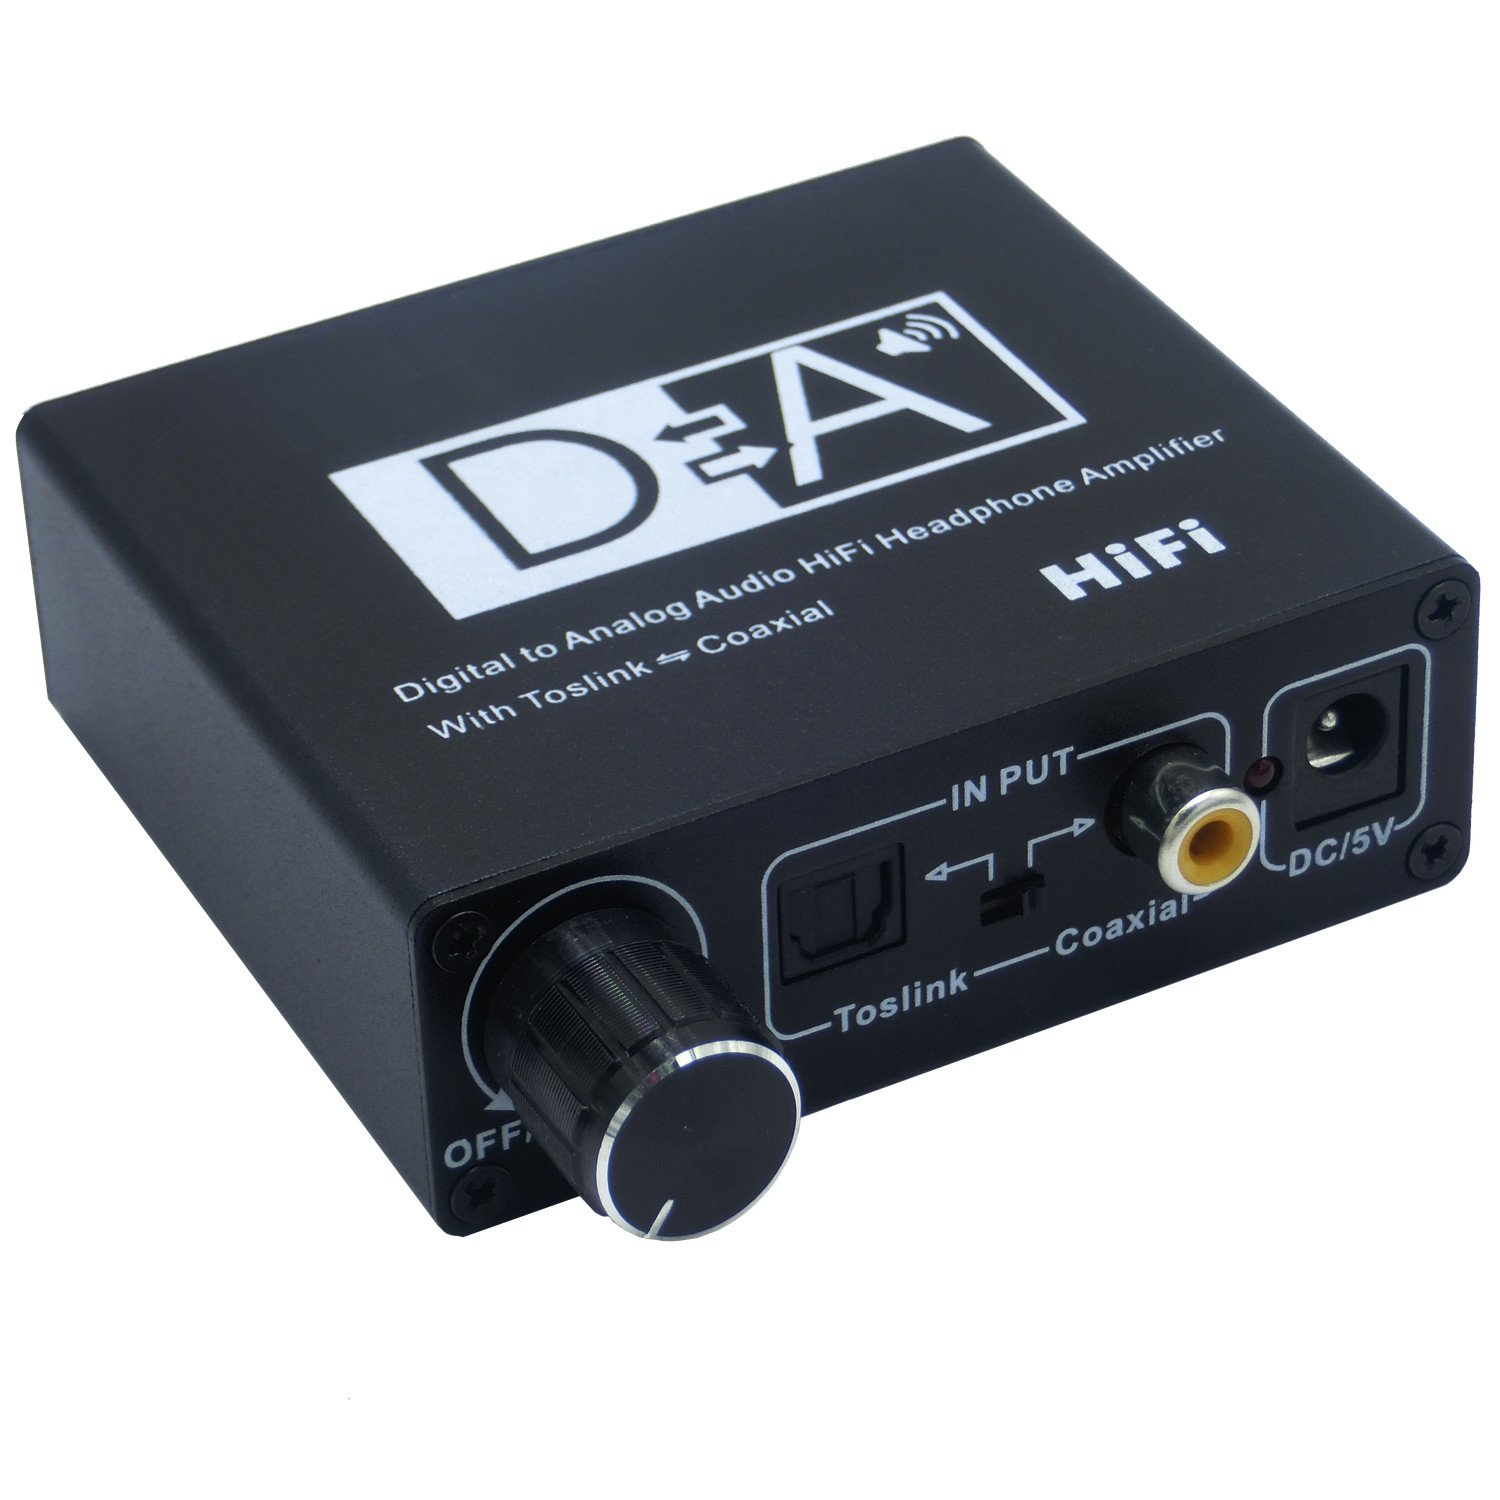 192KHZ DCA Digital To Analog Audio Converter With Volume Control Digital SPDIF Optical Toslink Coaxial To Analog Stereo L/R RCA 3.5mm for Blu-ray PS3 XBox HDDVD PS4 Home Cinema Systems AV AmpsAudio Ad